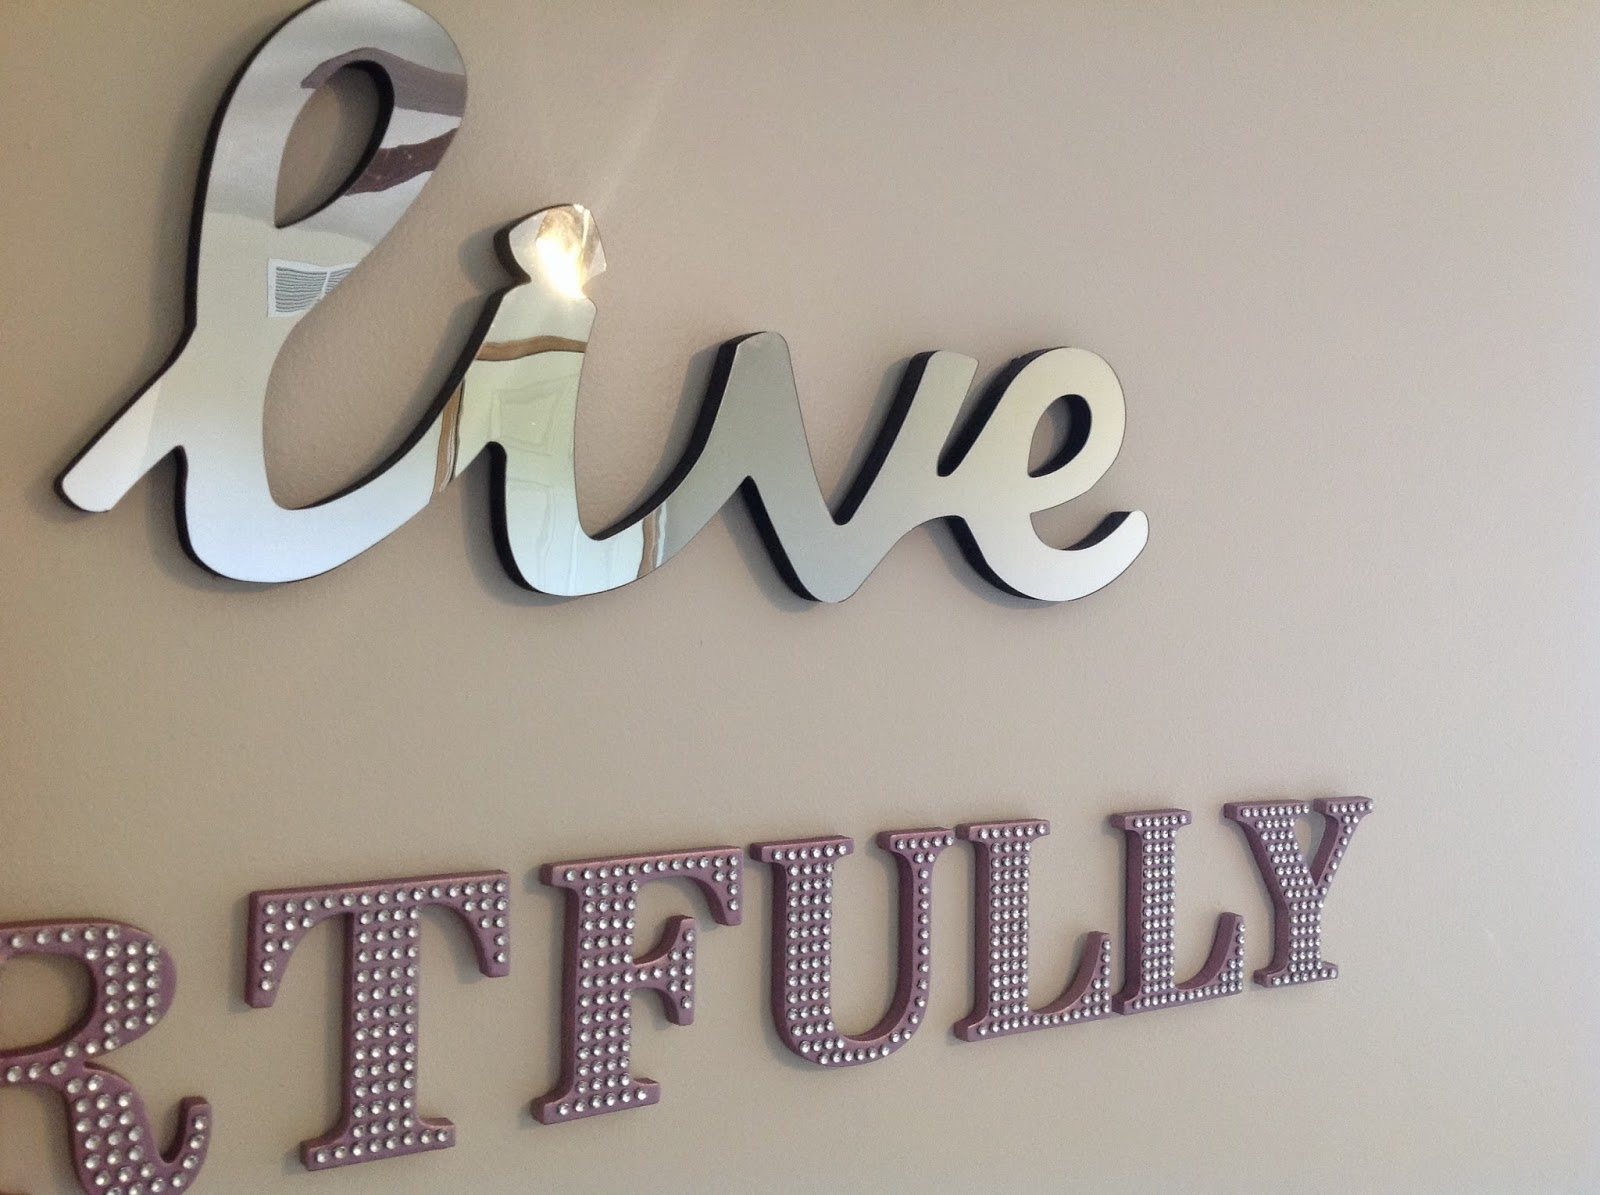 Mirrored Letters Wall Decor Mirrored Letters Wall Decor decorating ideas extraordinary image of accessories for bedroom 1600 X 1195